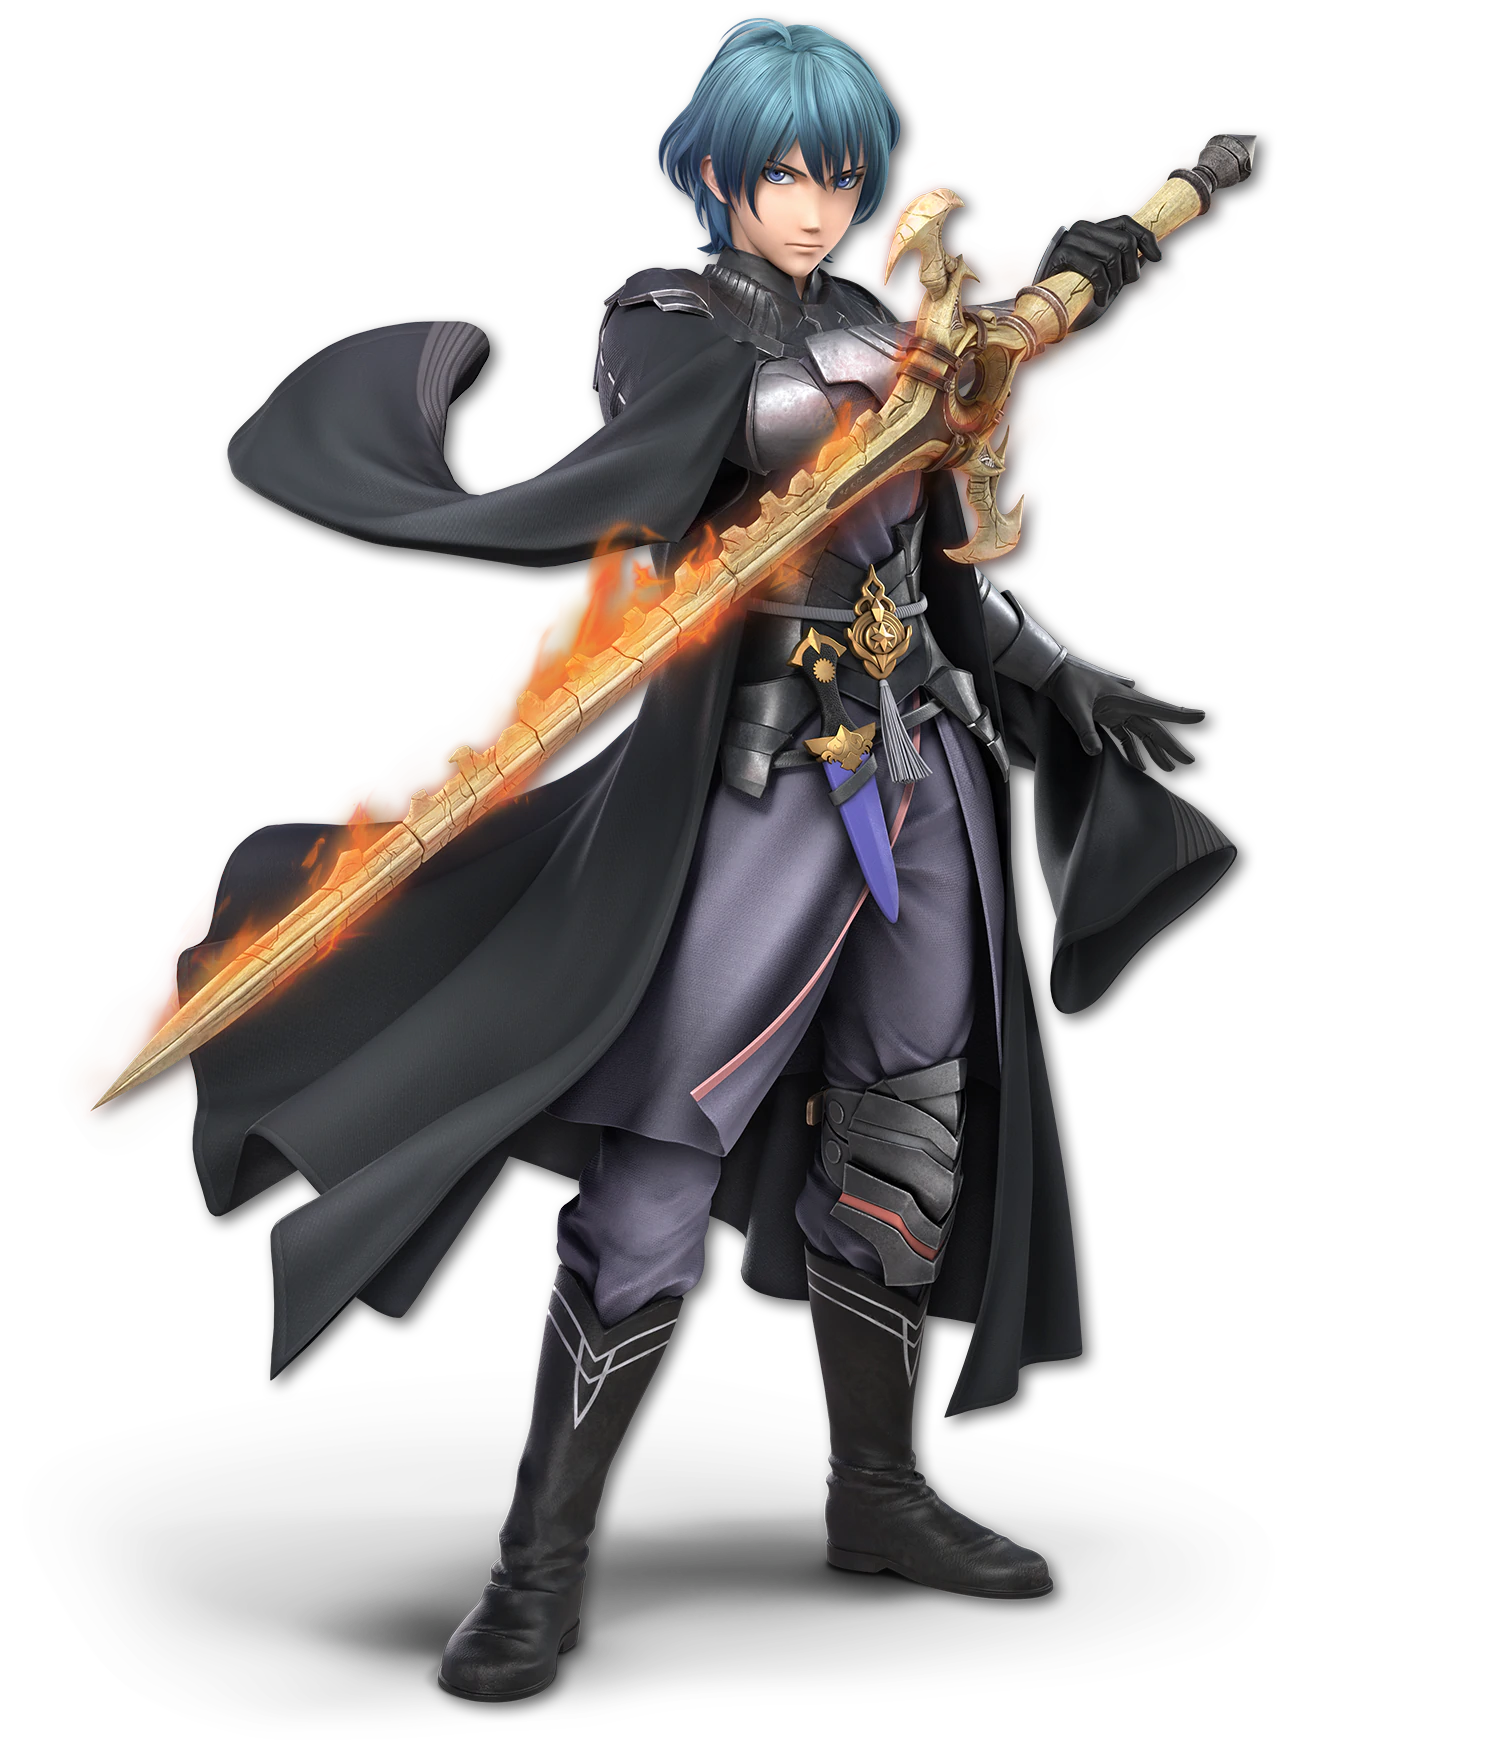 Byleth (Super Smash Bros. Ultimate)